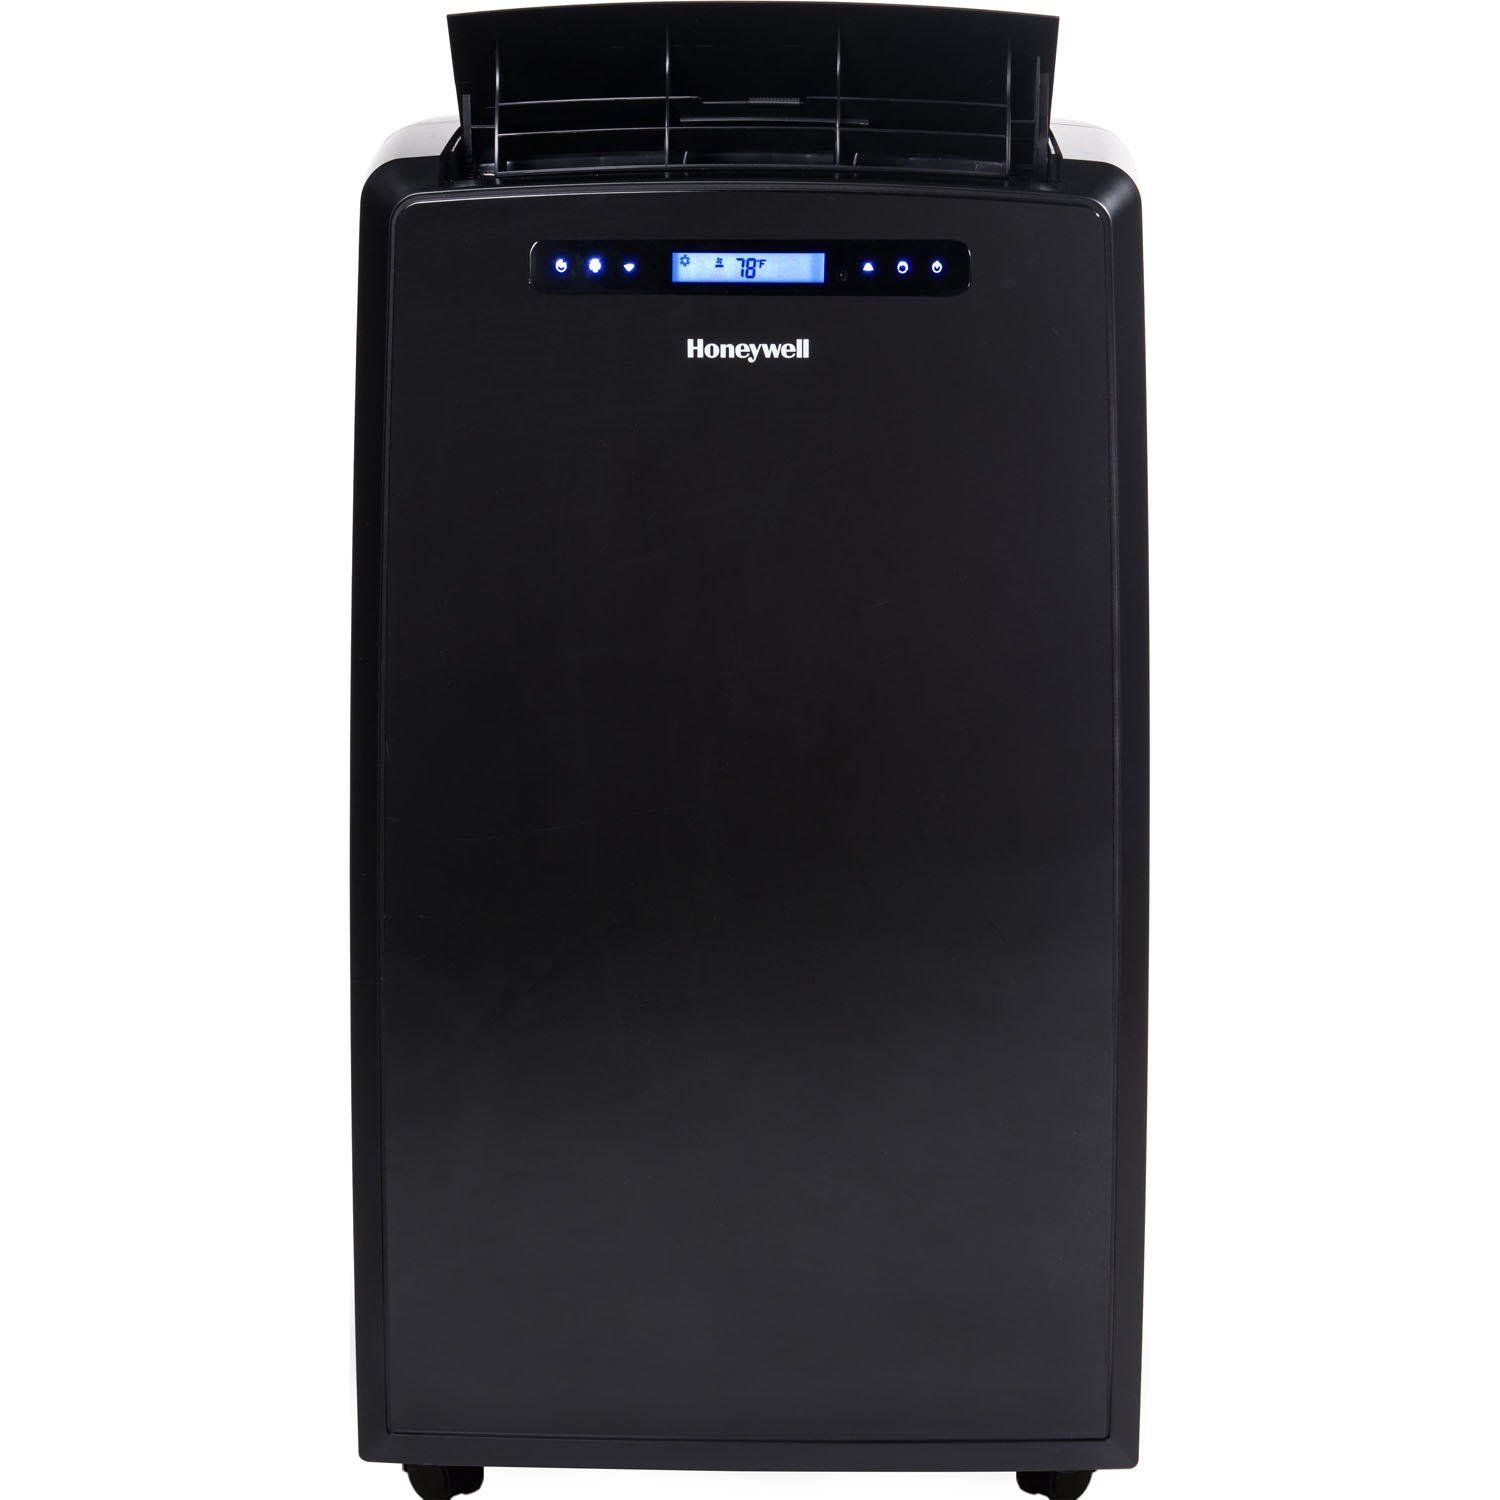 Honeywell MM14CCSBB 14000 BTU Portable AC, Dehumidifier, Fan for Rooms Up To 550-700 Sq. Ft. with Thermal Overload Protection, Washable Air Filter & Remote Control